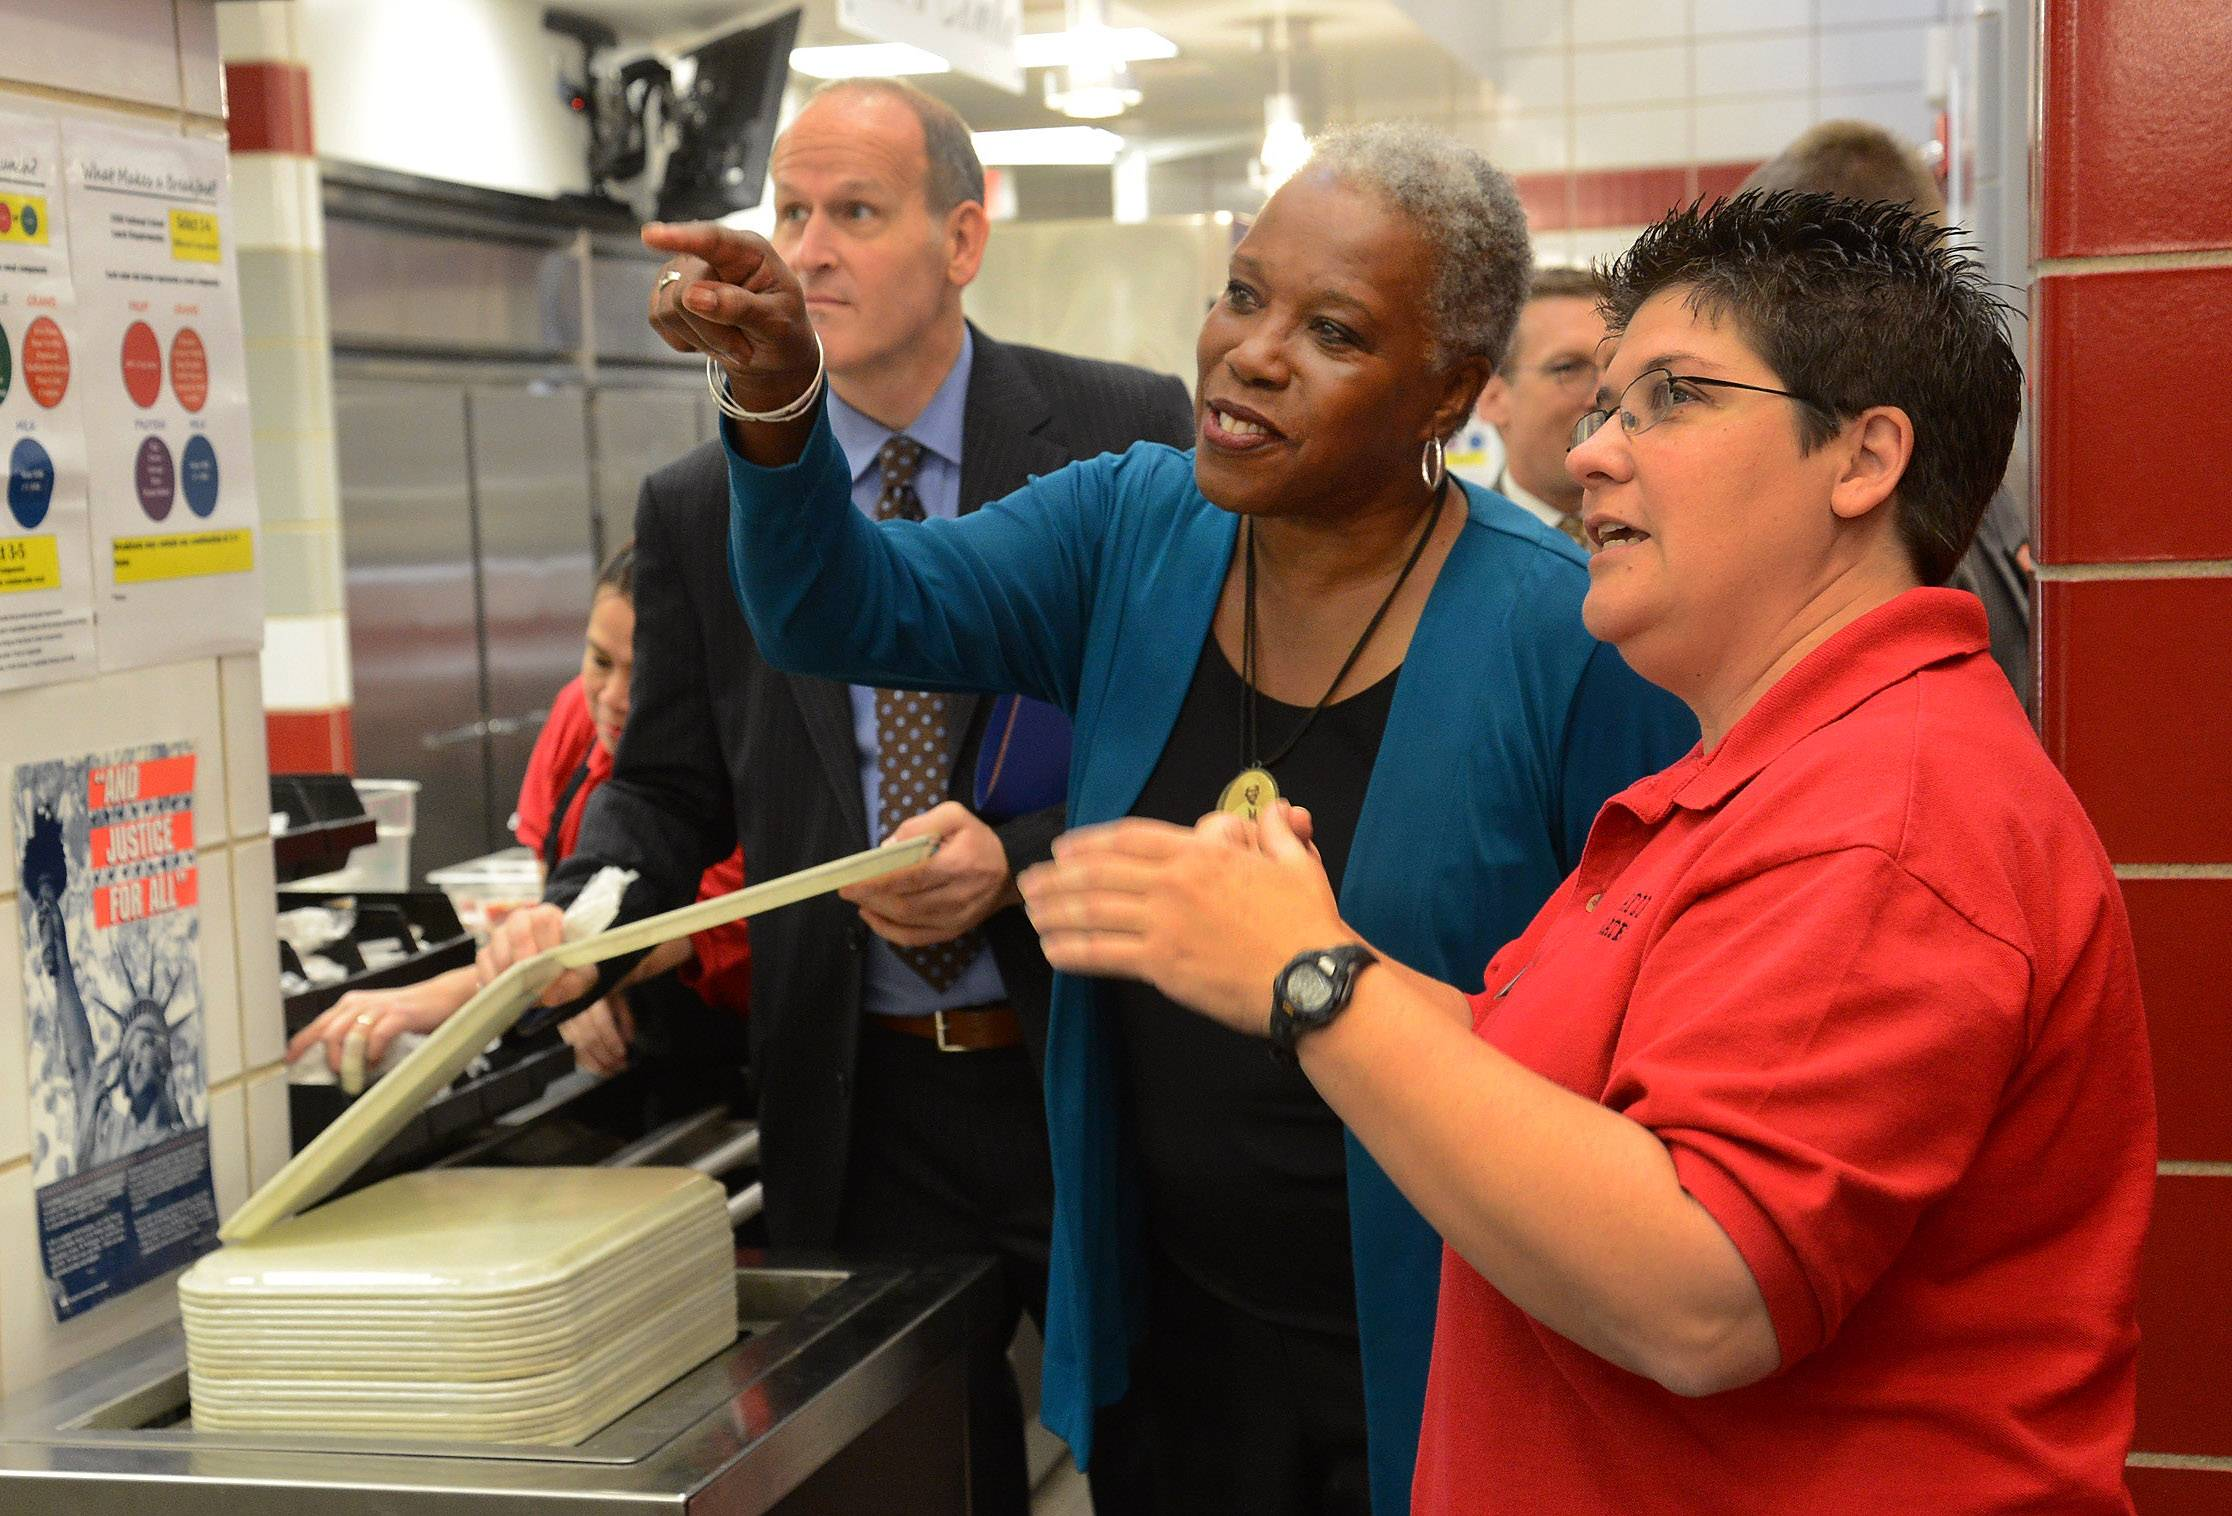 Audrey Rowe goes through the lunch line guided by Food Service Manager Debbie Madaj.